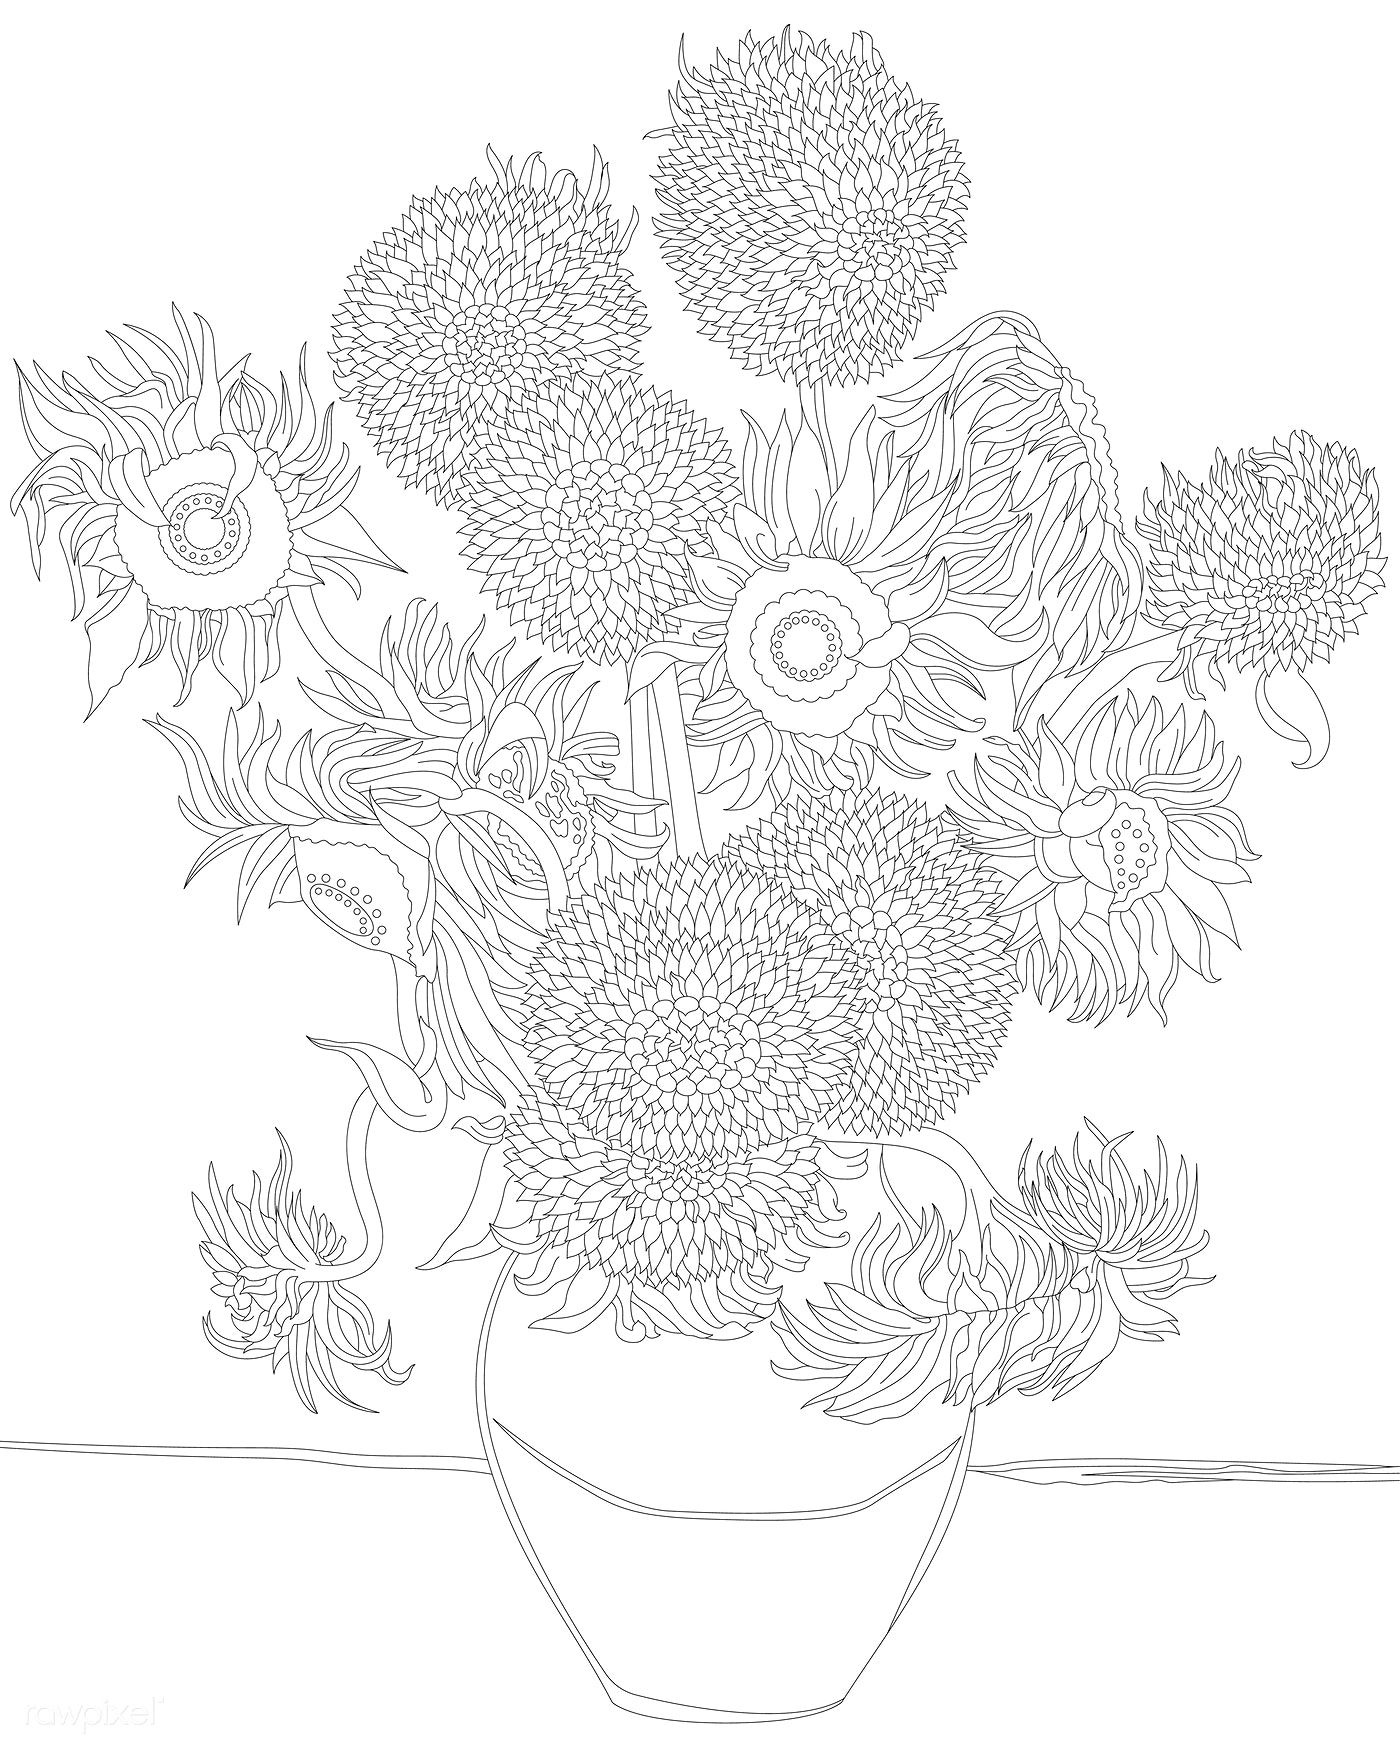 van gogh sunflowers coloring page sunflowers 1889 by vincent van gogh adult coloring page coloring page gogh sunflowers van